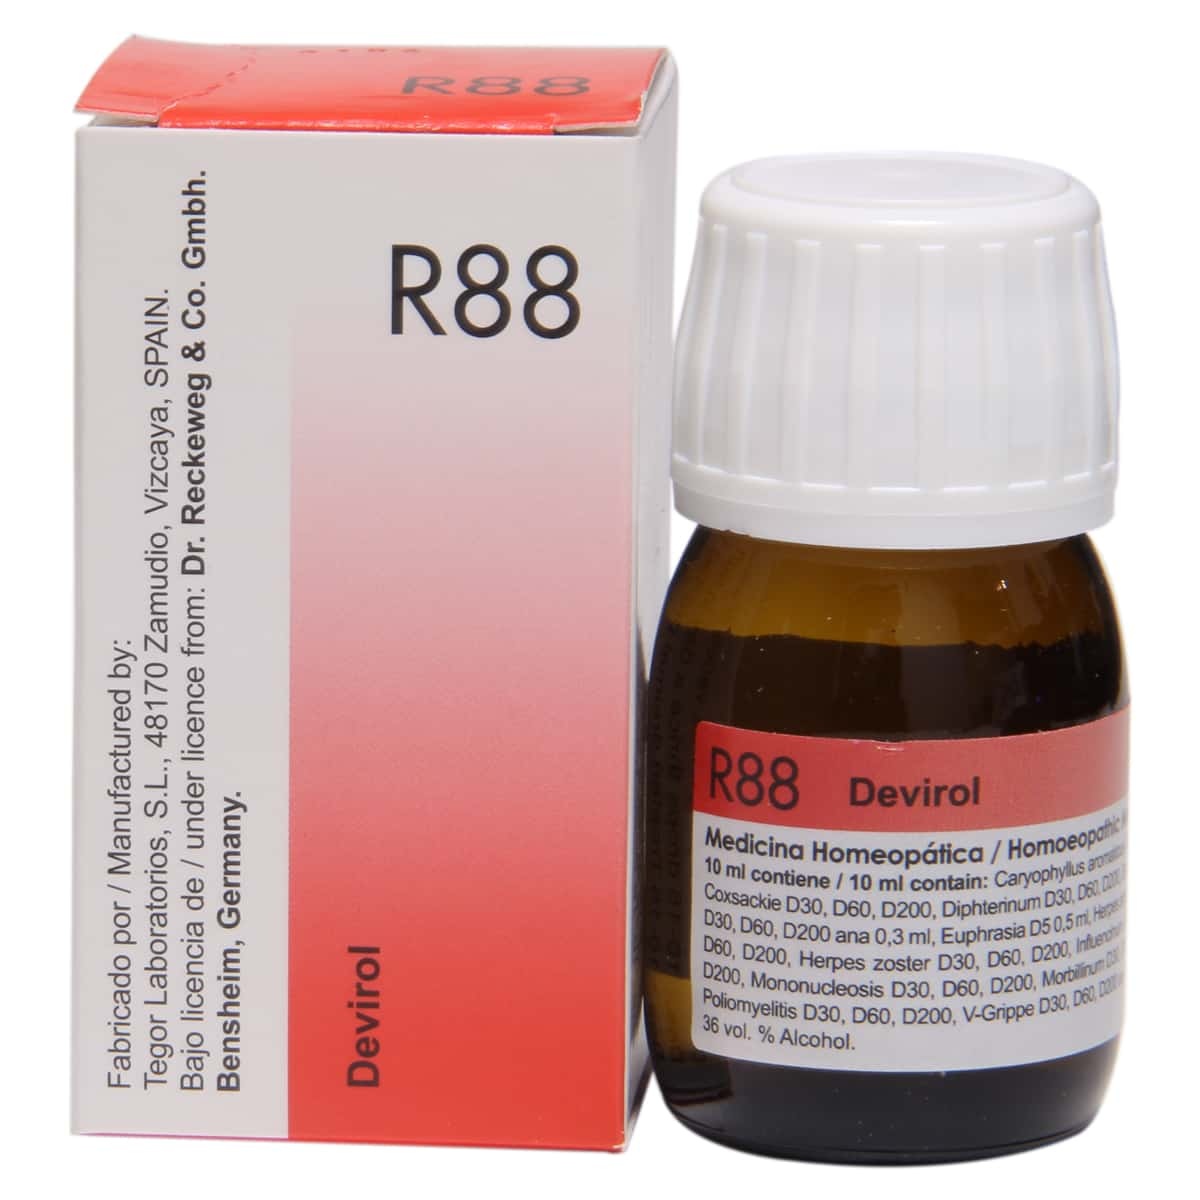 R88-Homeopathicology.com